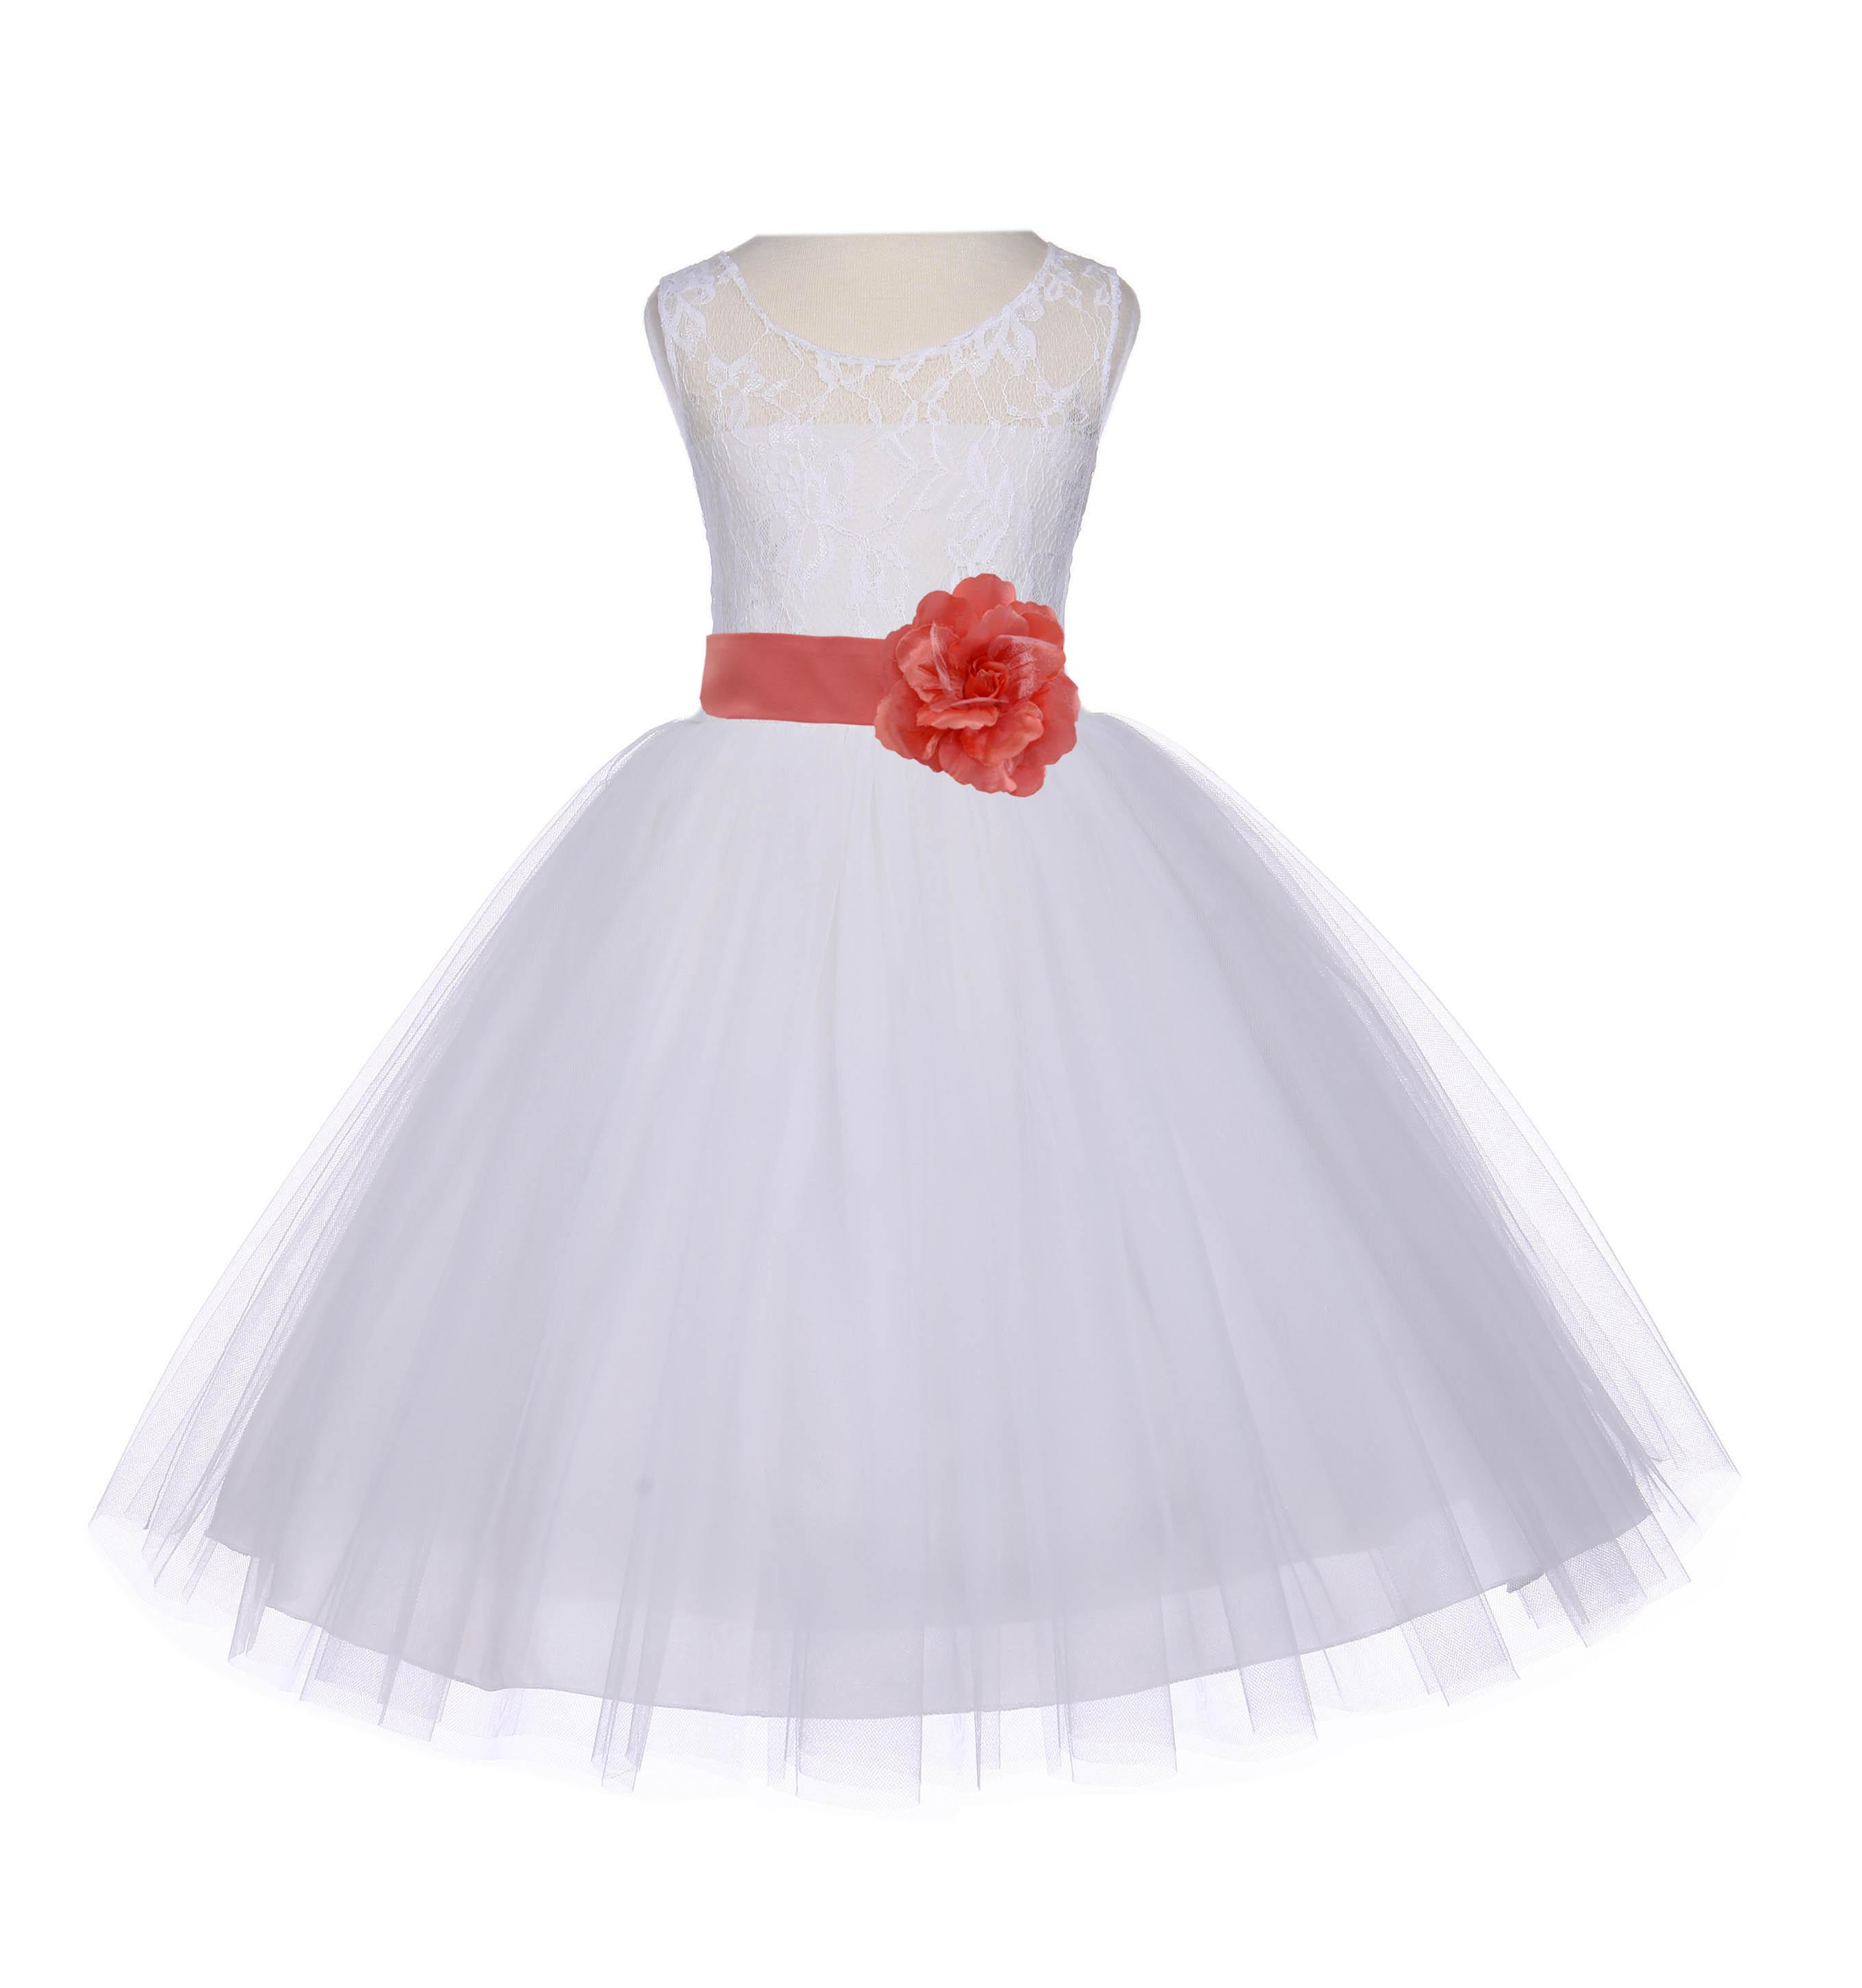 Ekidsbridal Ivory Lace Bodice Flower Girl Dress Tulle Junior Bridesmaid Wedding Pageant Toddler Recital Easter Holiday First Communion Birthday Baptism Special Occasions Gown 153S